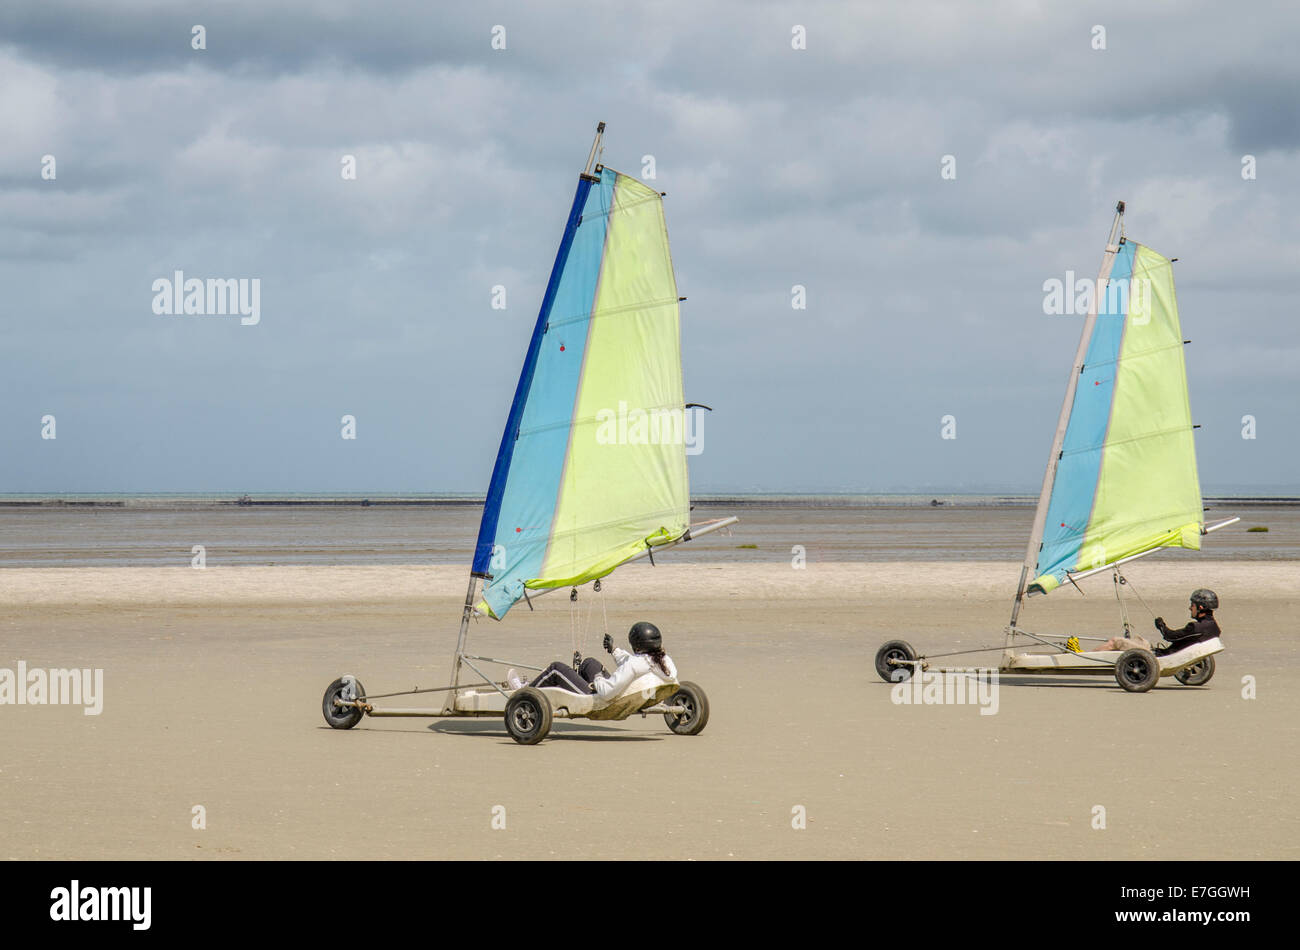 Land Yachting Hirel Brittany France - Stock Image